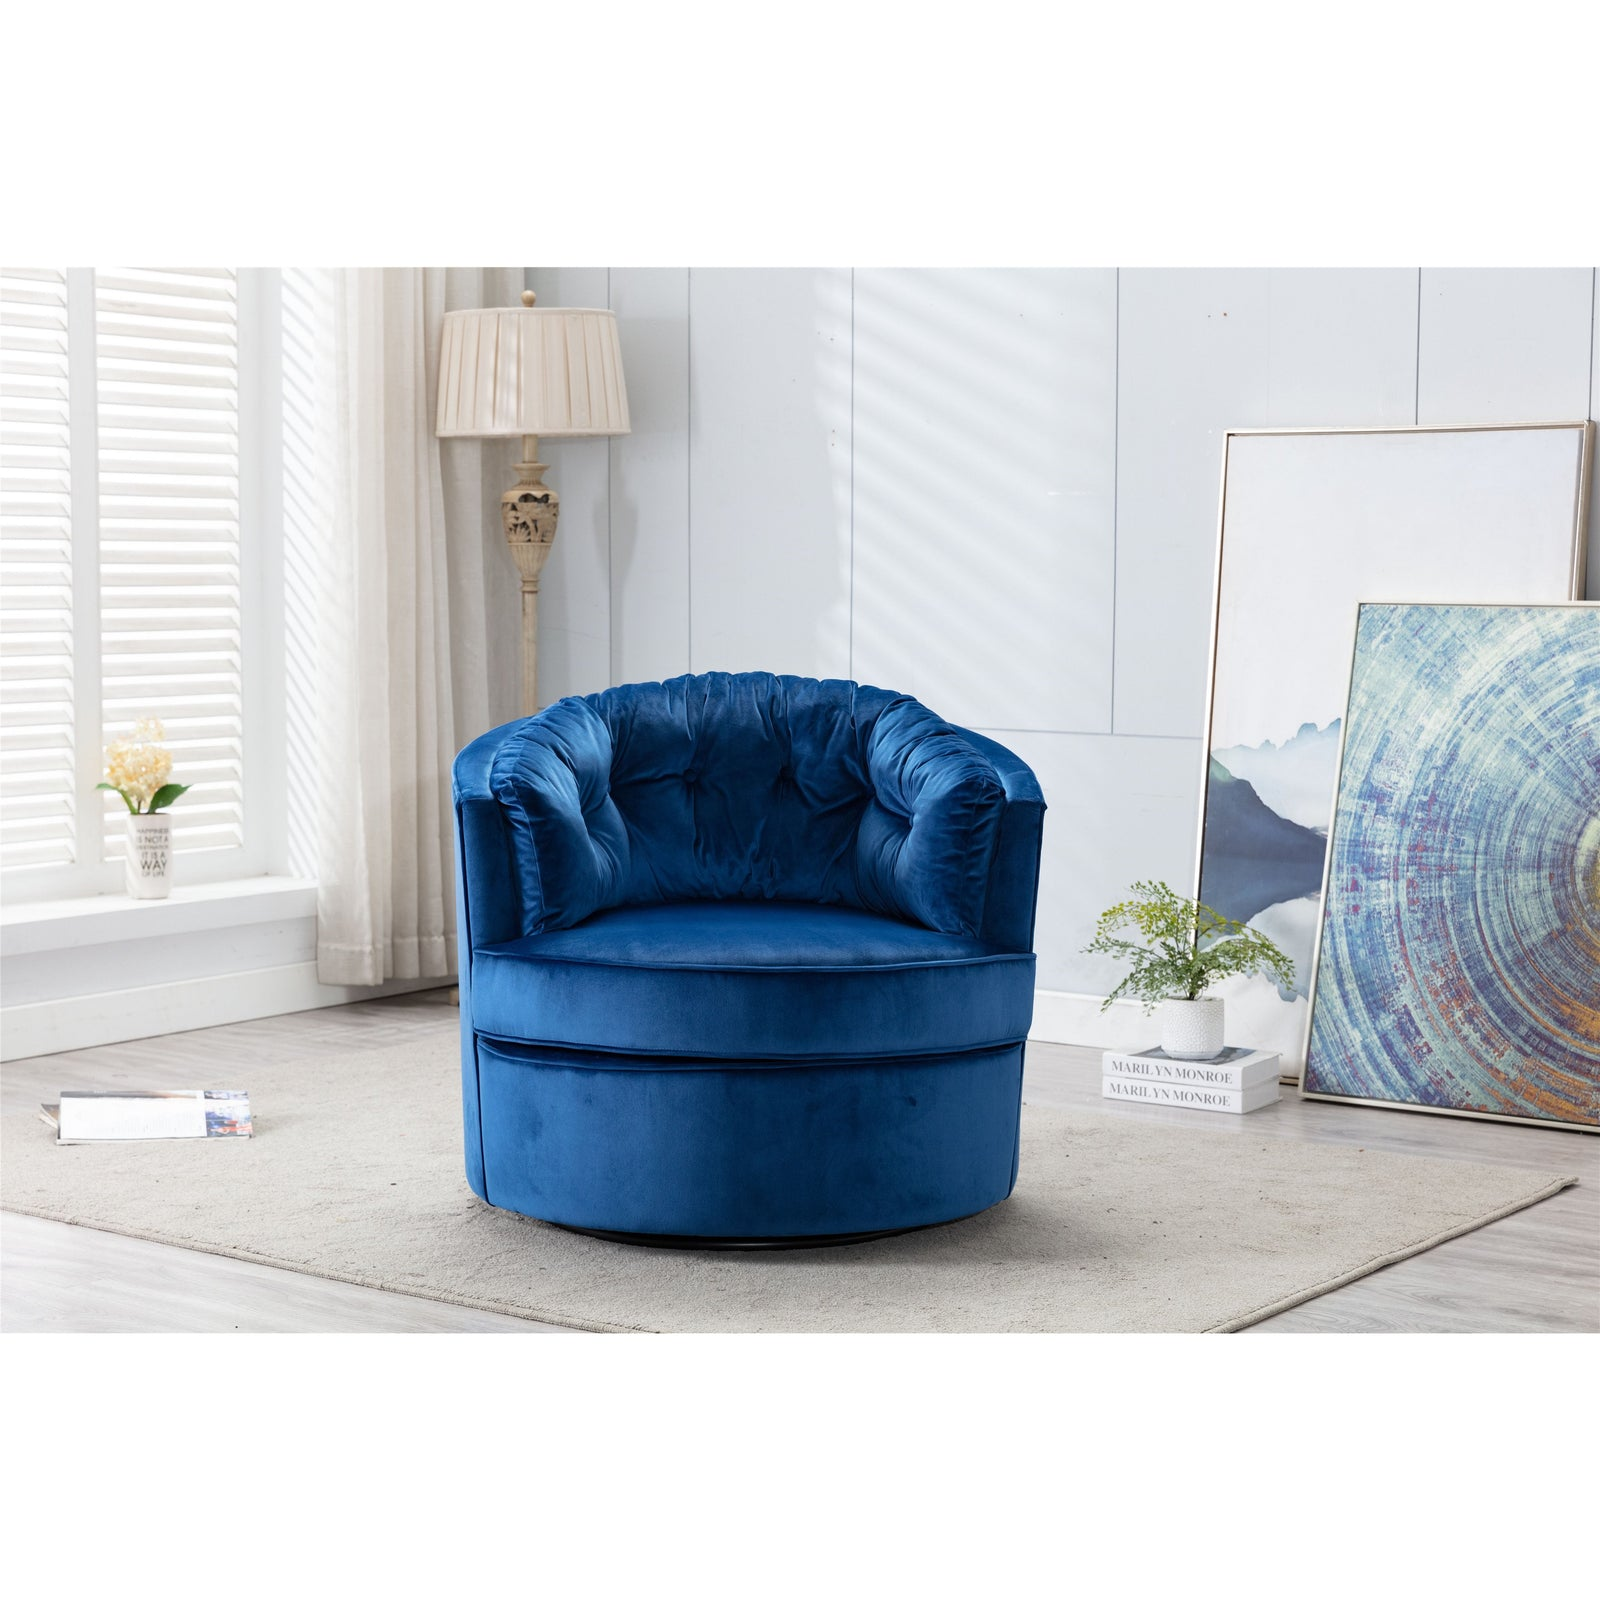 Midnight Blue Modern Swivel Accent Chair Barrel Chair Leisure Chair for Living Room BH3951828